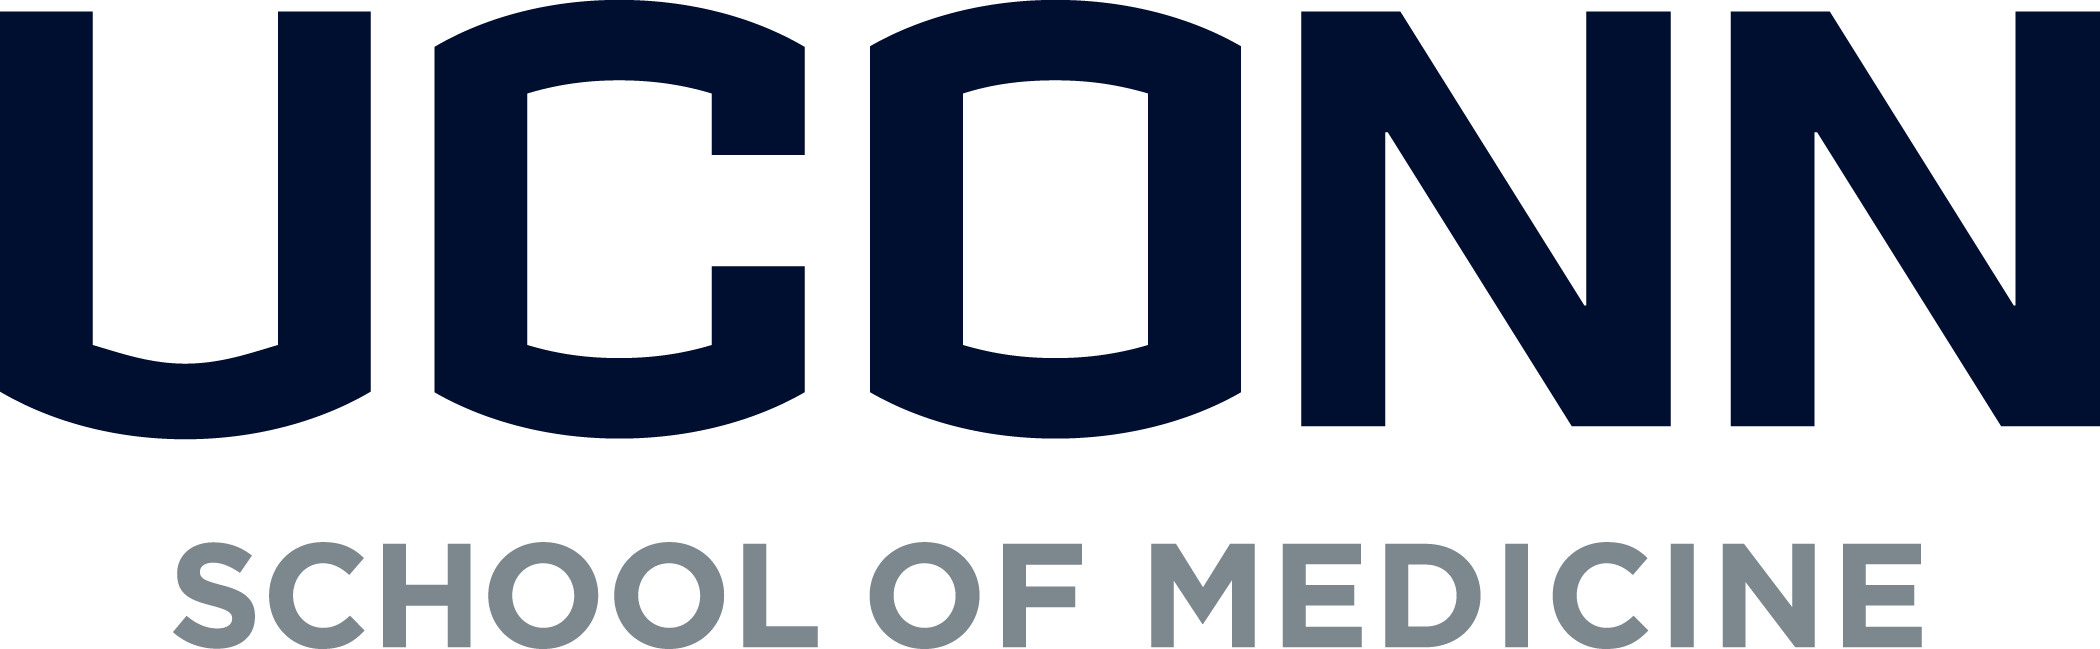 Uconn School of Medicine Logo